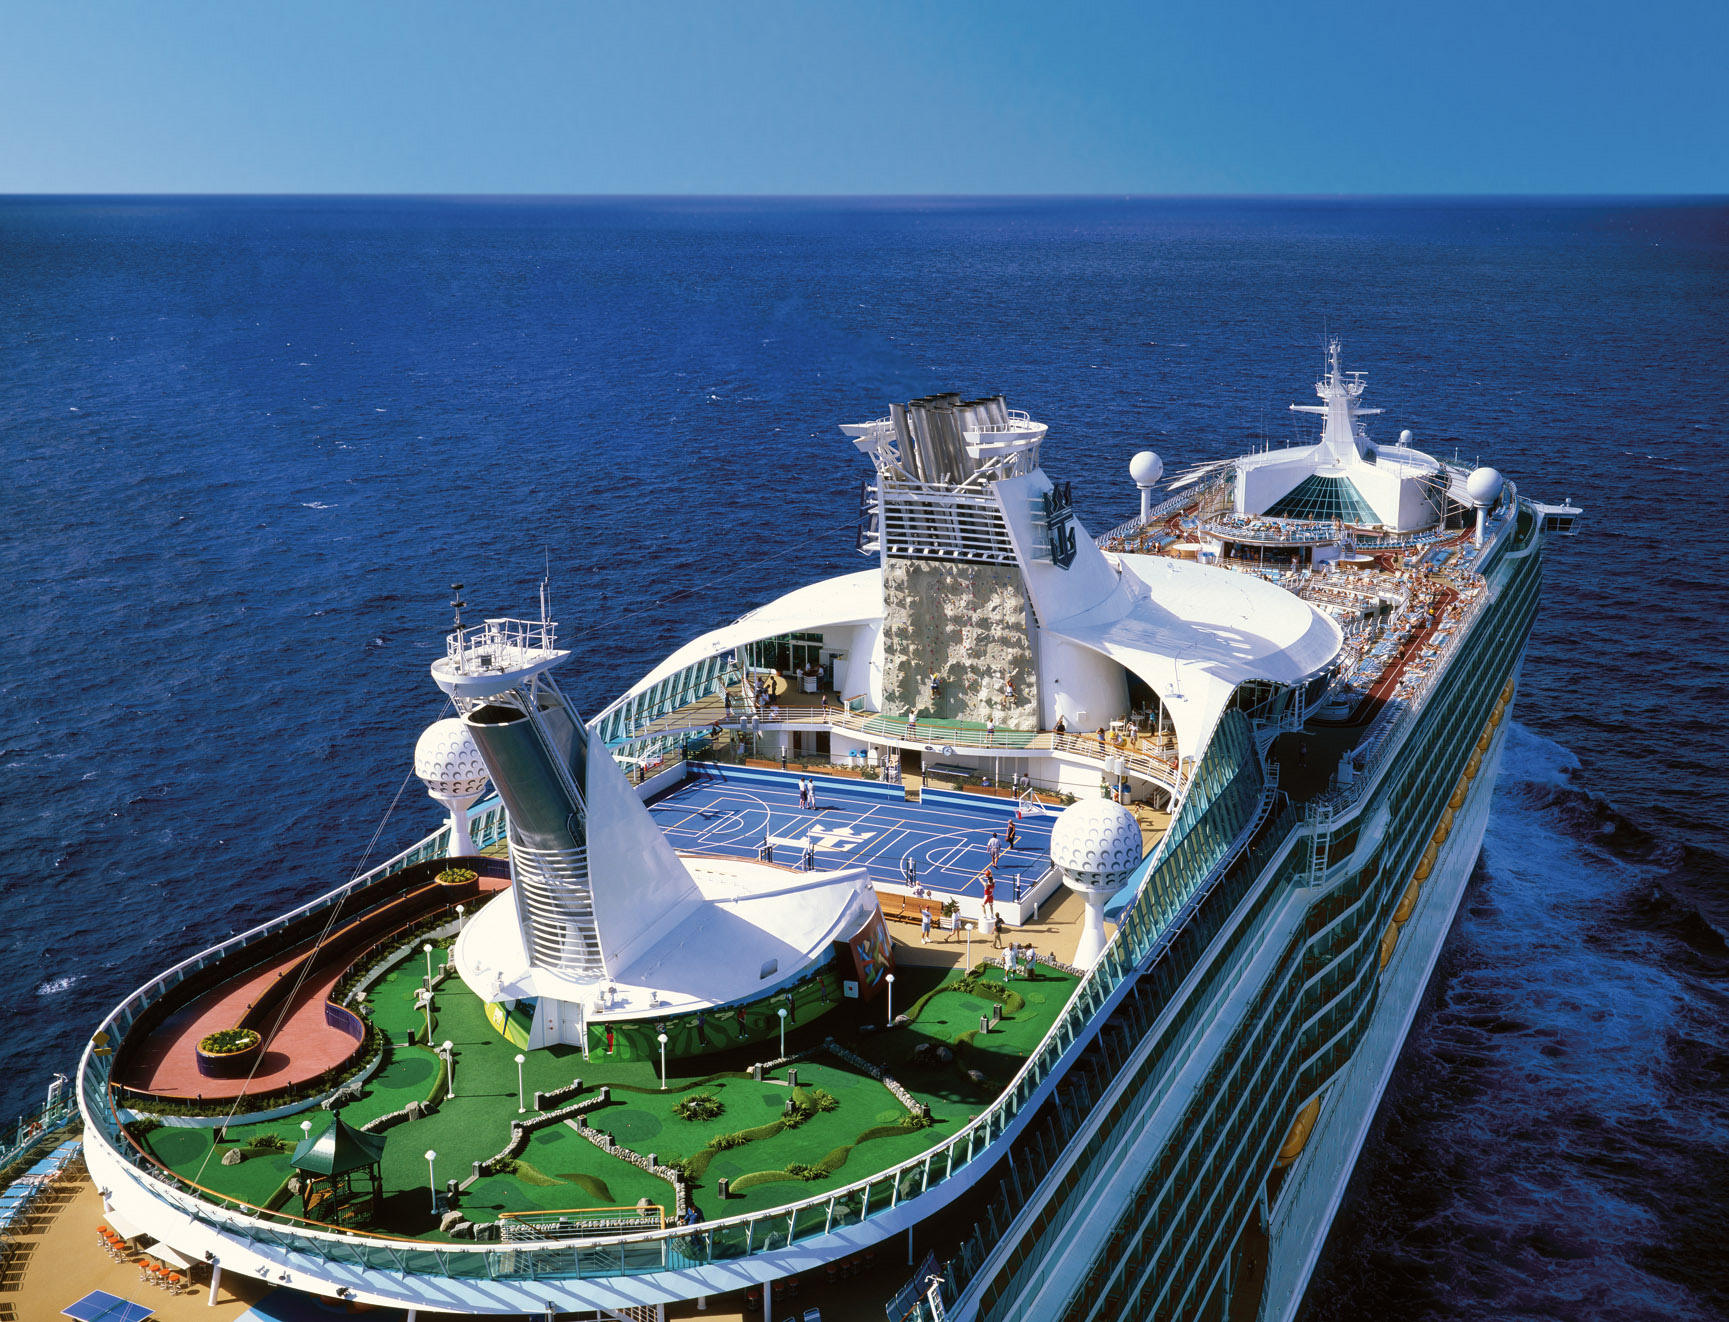 Tour Europe's cities with Royal Caribbean